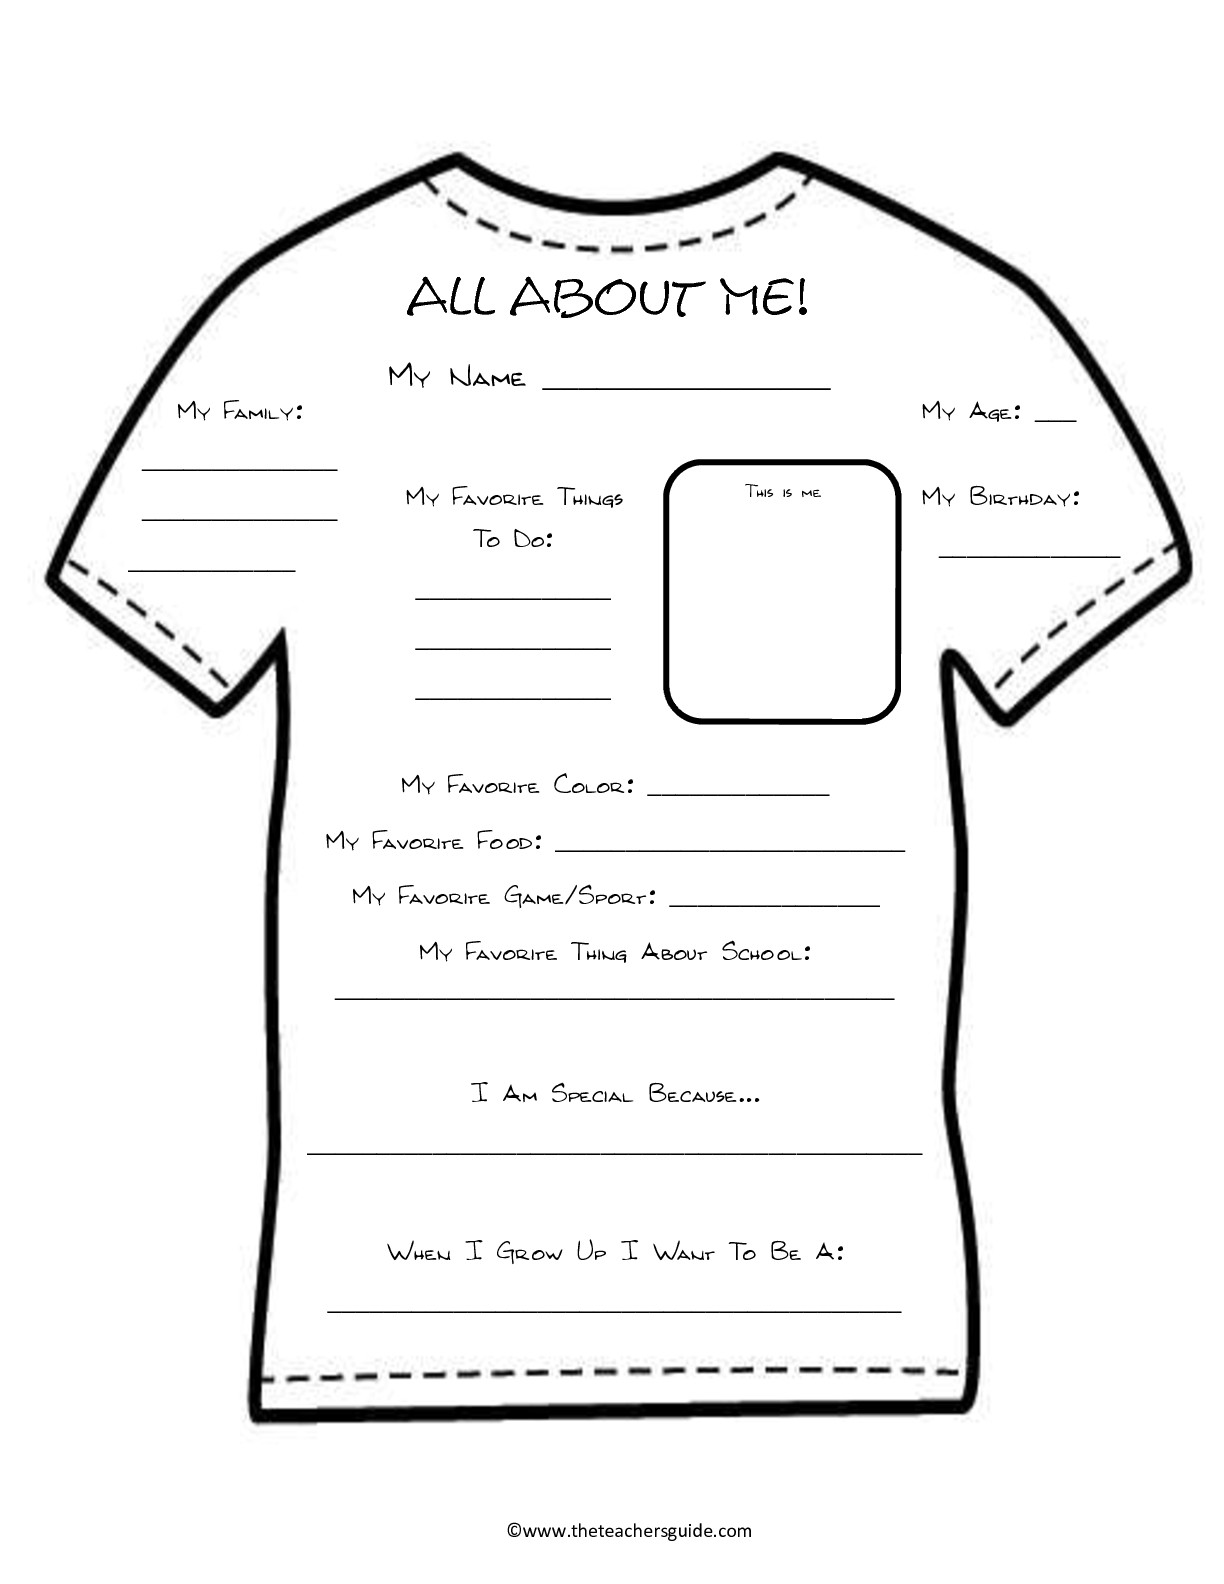 photo relating to All About Me Printable named 33 Pedagogic All Relating to Me Worksheets